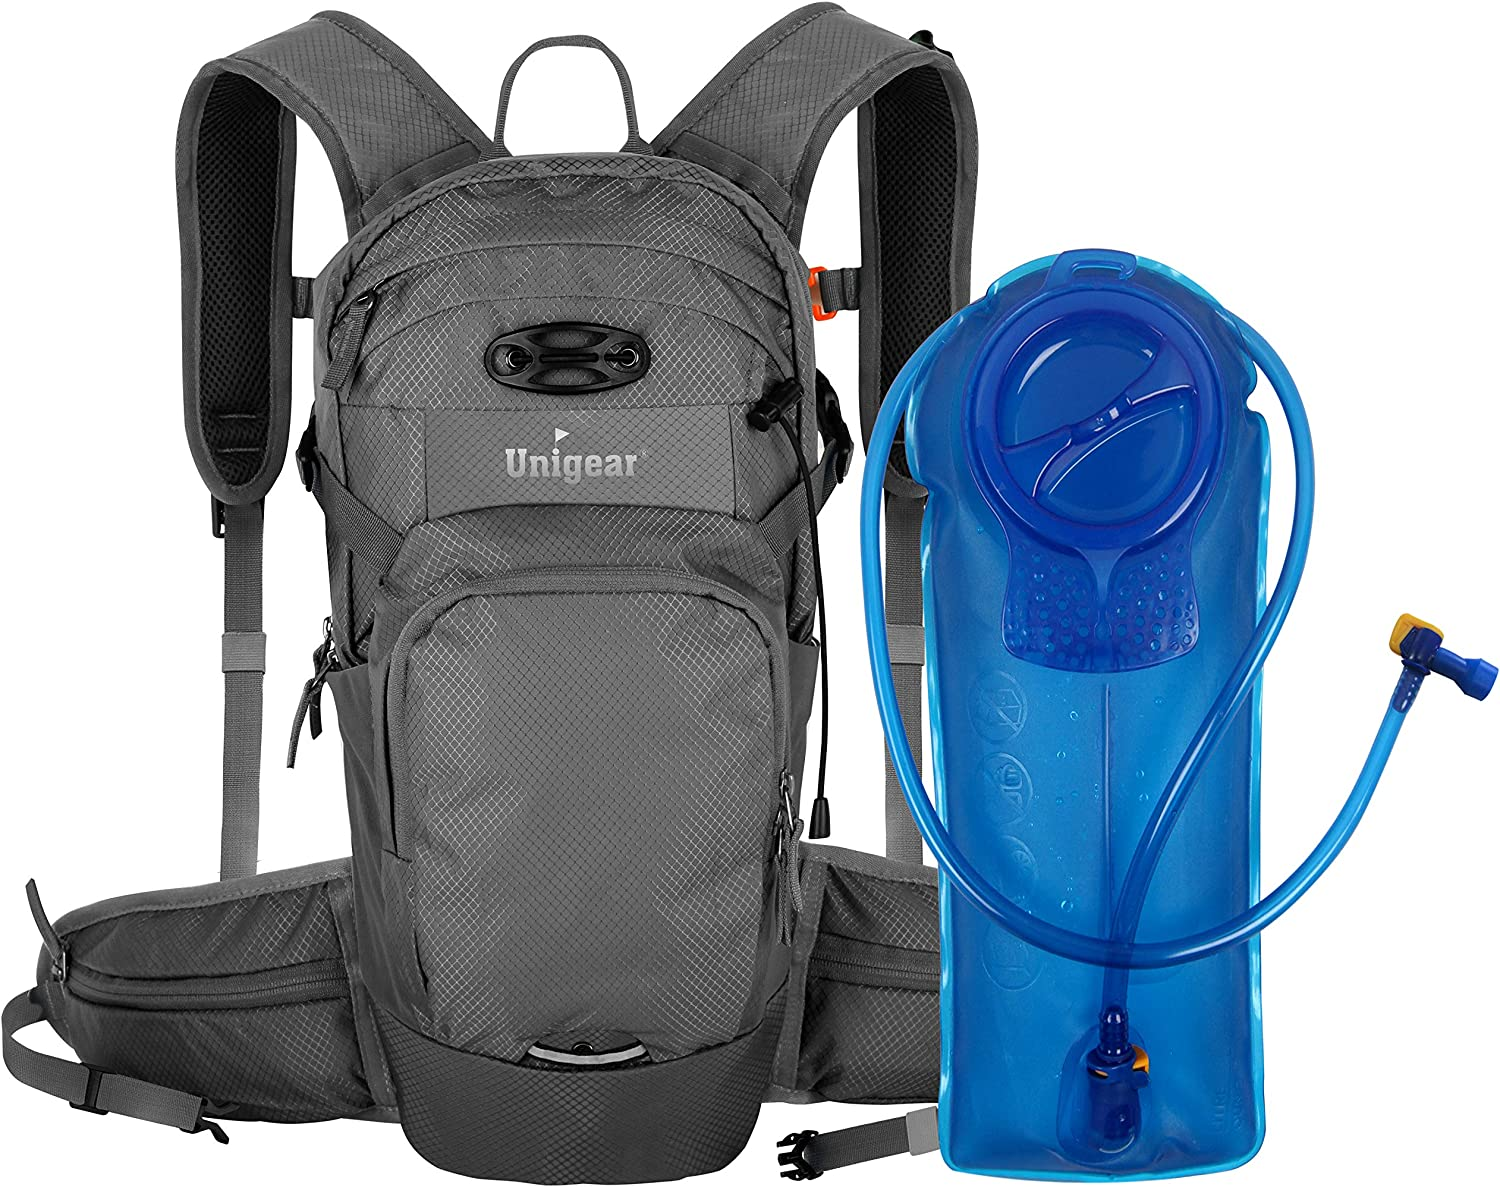 Unigear Hydration Packs Backpack with 2L TPU Water Bladder Reservoir, Thermal Insulation Pack Keeps Liquid Cool up to 4 Hours for Running, Hiking, Climbing, Cycling